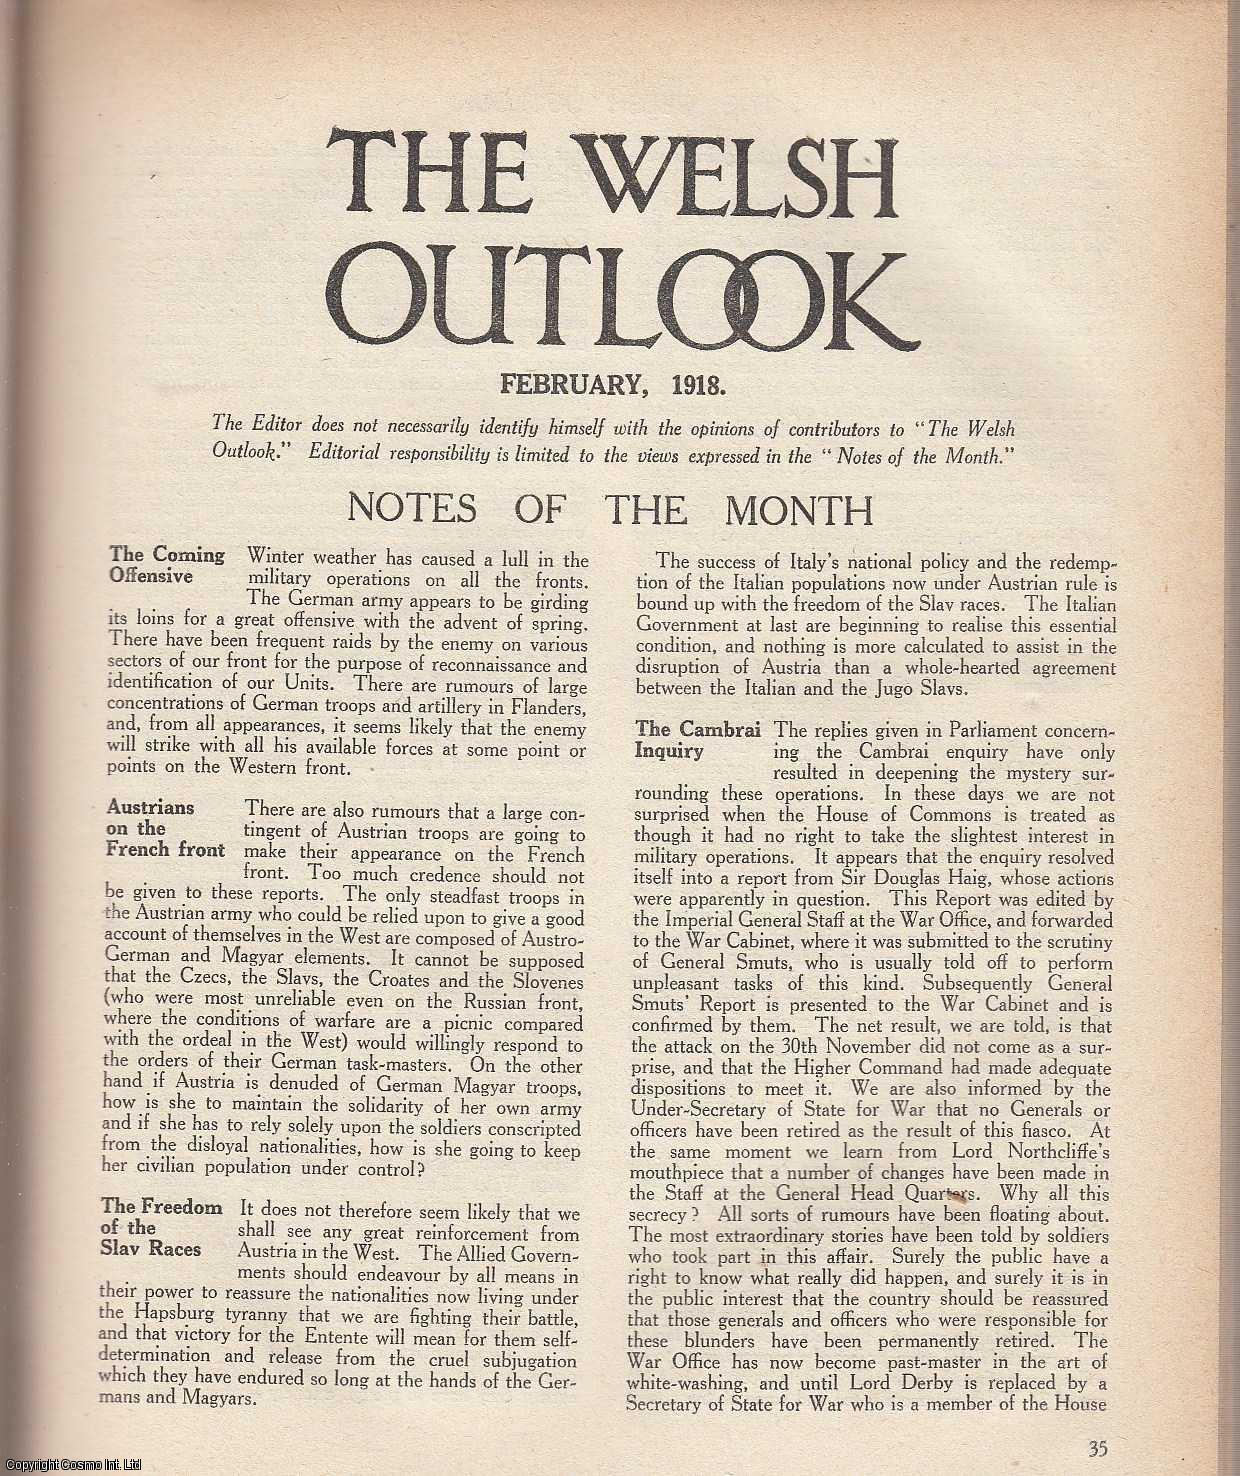 The Welsh Outlook. A Monthly Journal of National Social Progress. February, 1918. Contains; Distinguished Welshmen: Honoured by King and Country; The Church and Labour - A Symposium by Herbert Morgan; The Political Future of Wales by a Welsh Nationalist; Views of Representative Welshmen; Drifting - The Next Step by David Davies; Wales: its Politics and Economics by E.T. John; The Temperance Problem: Some Lessons of The Past by Thos. P. Whittaker; Messages to mars by Martian; Forestry Possibilities in Wales by Wm. Craven Llewelyn., Thomas Jones (Editor)